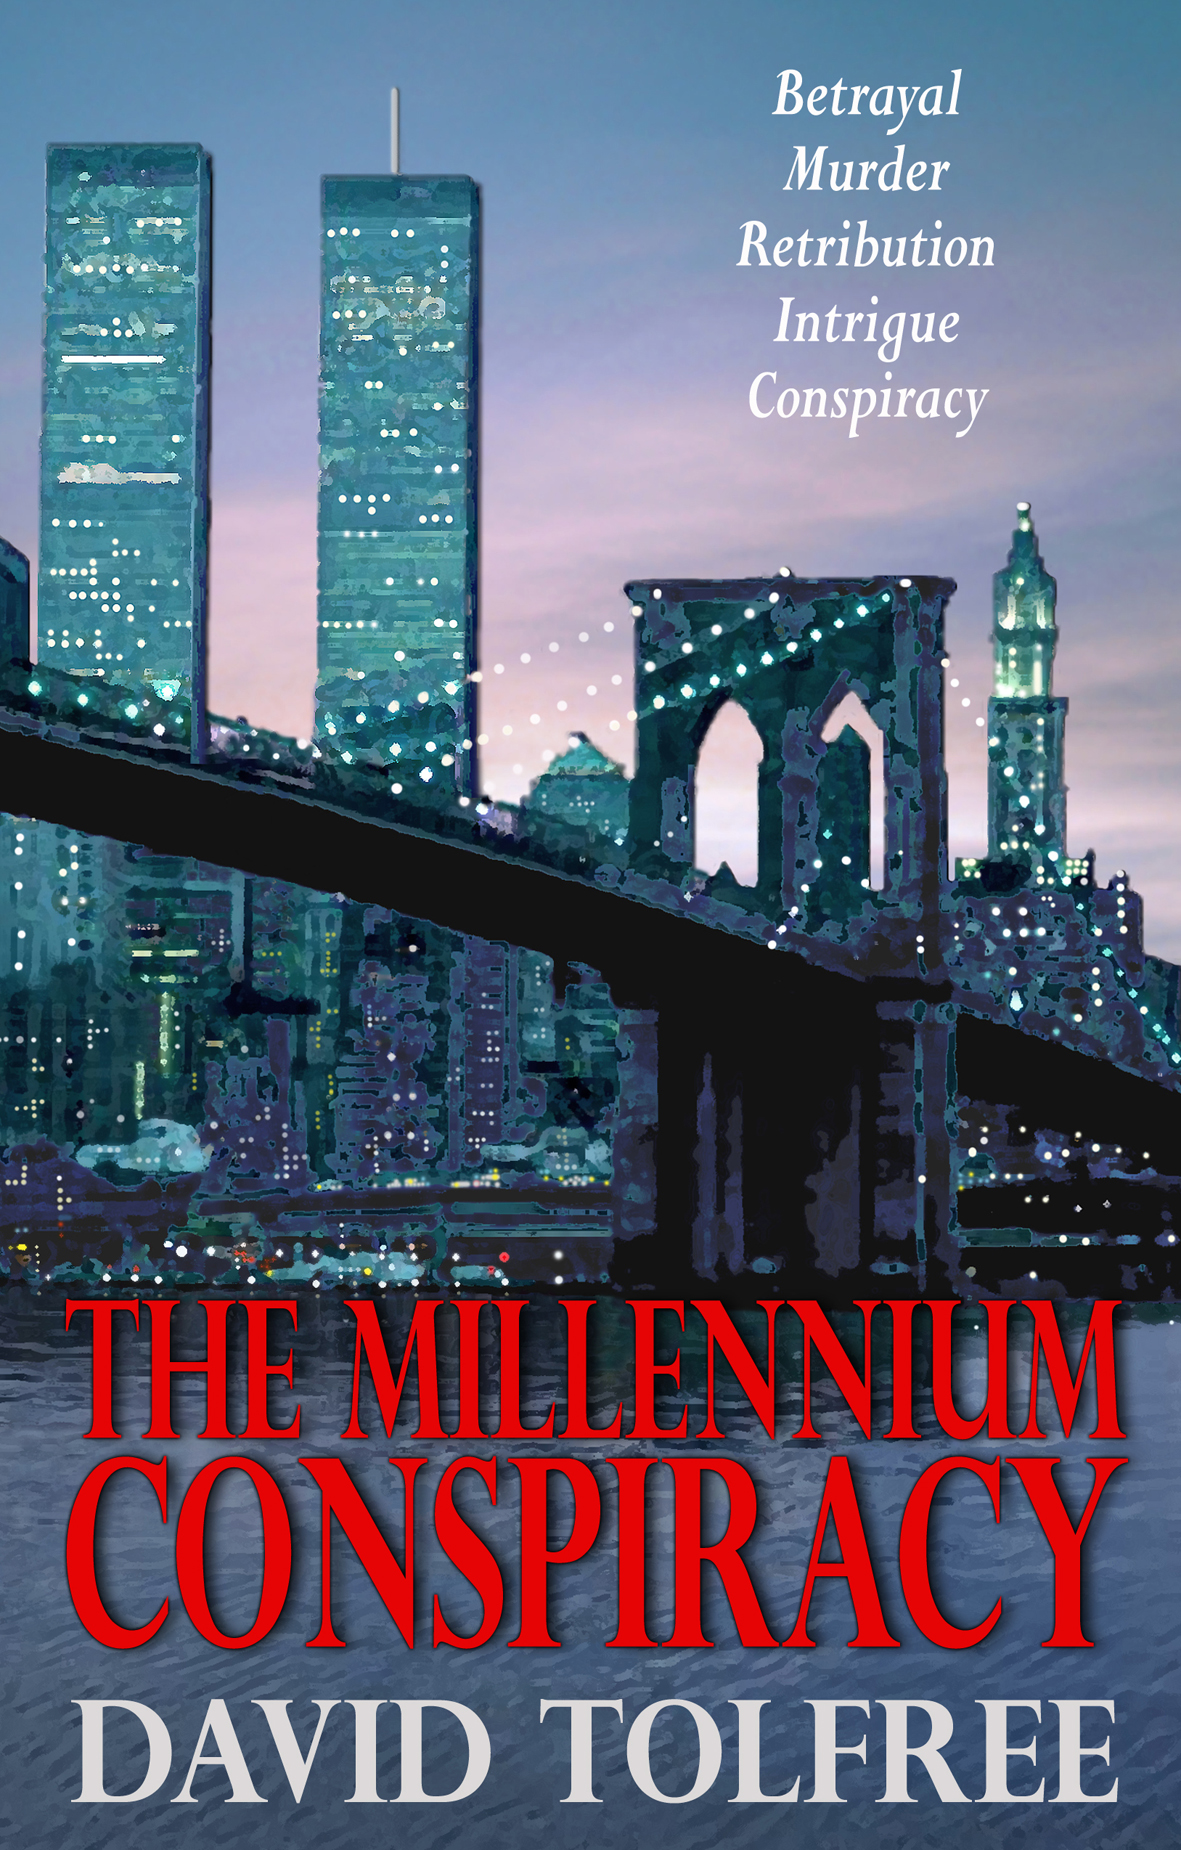 The Millennium Conspiracy